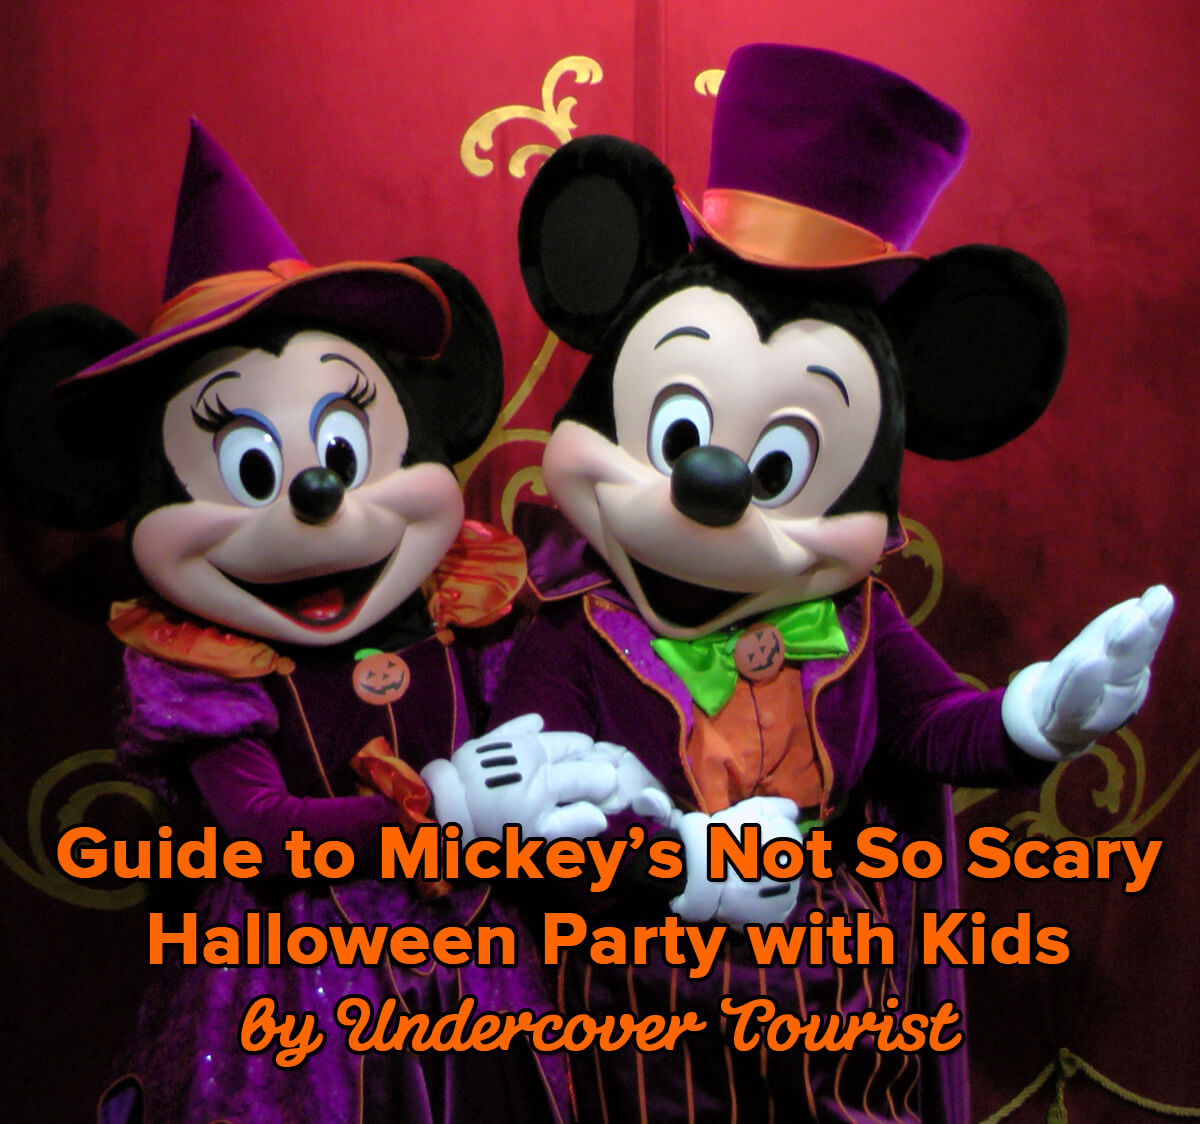 guide to mickeys not so scary halloween party 2018 disney halloween party